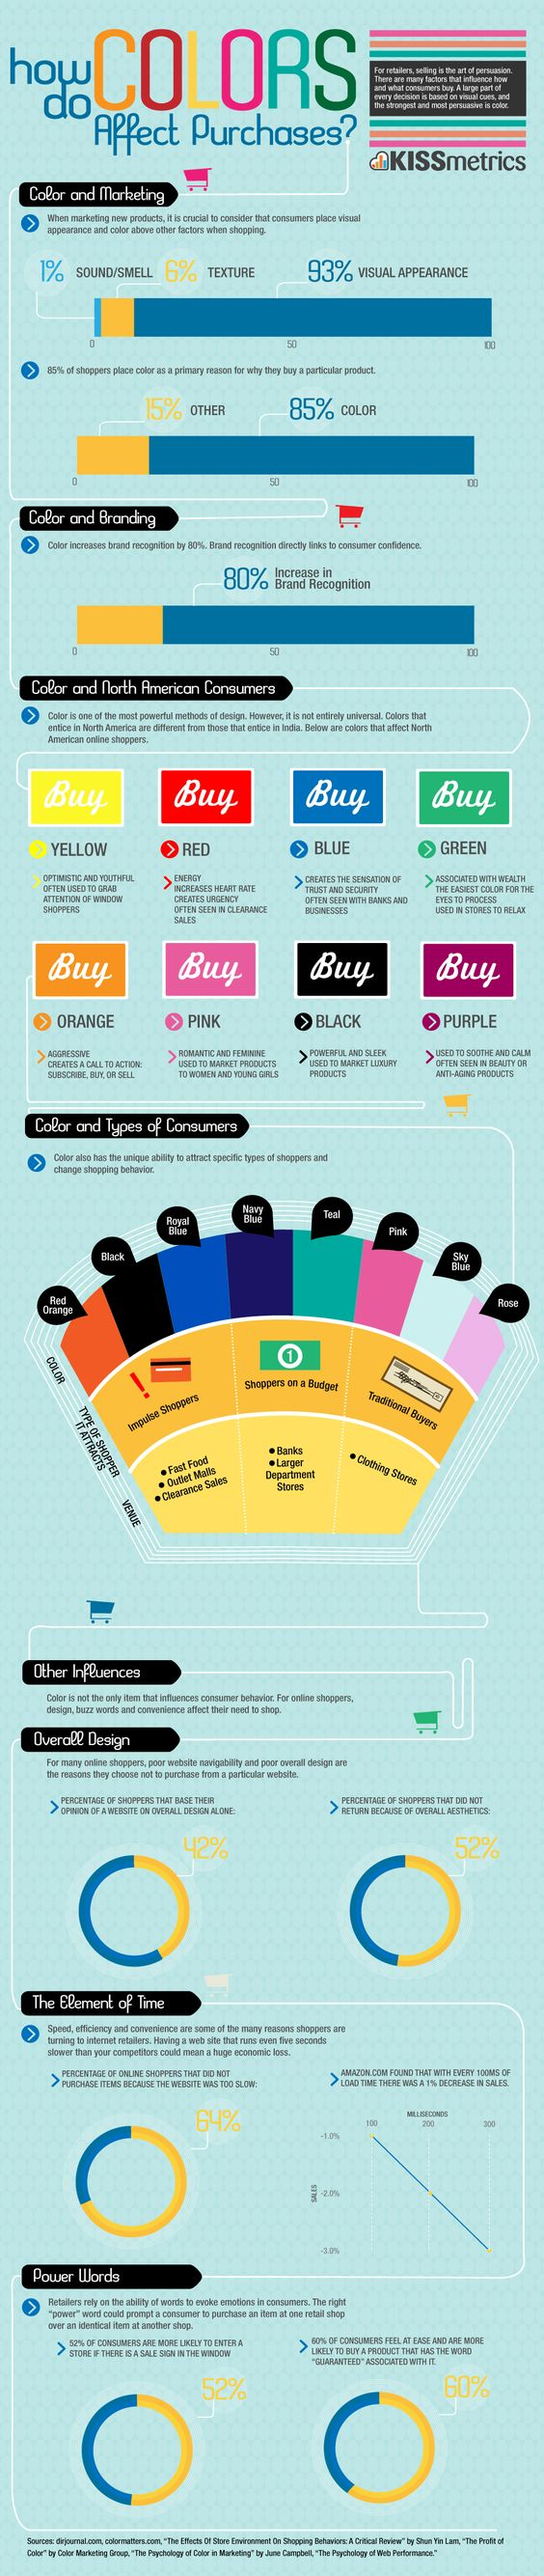 How color affects purchases...info presented in graphic format.